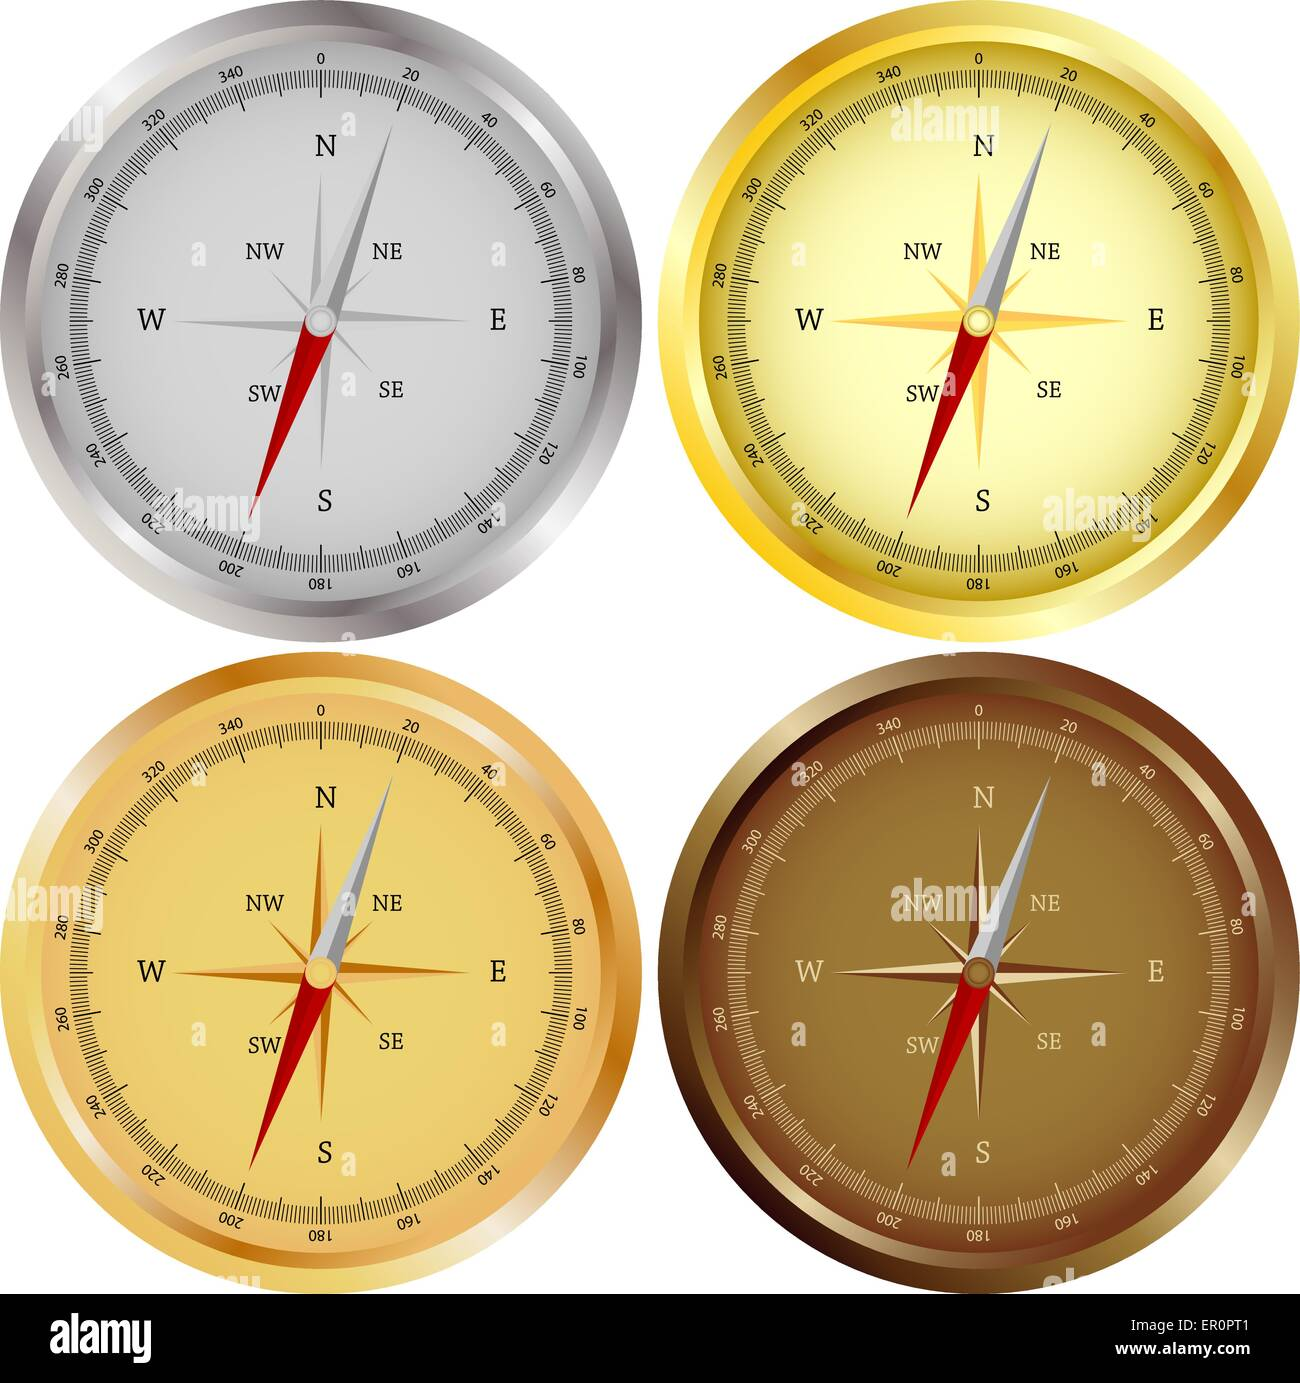 Set of 4 Compasses - Stock Vector